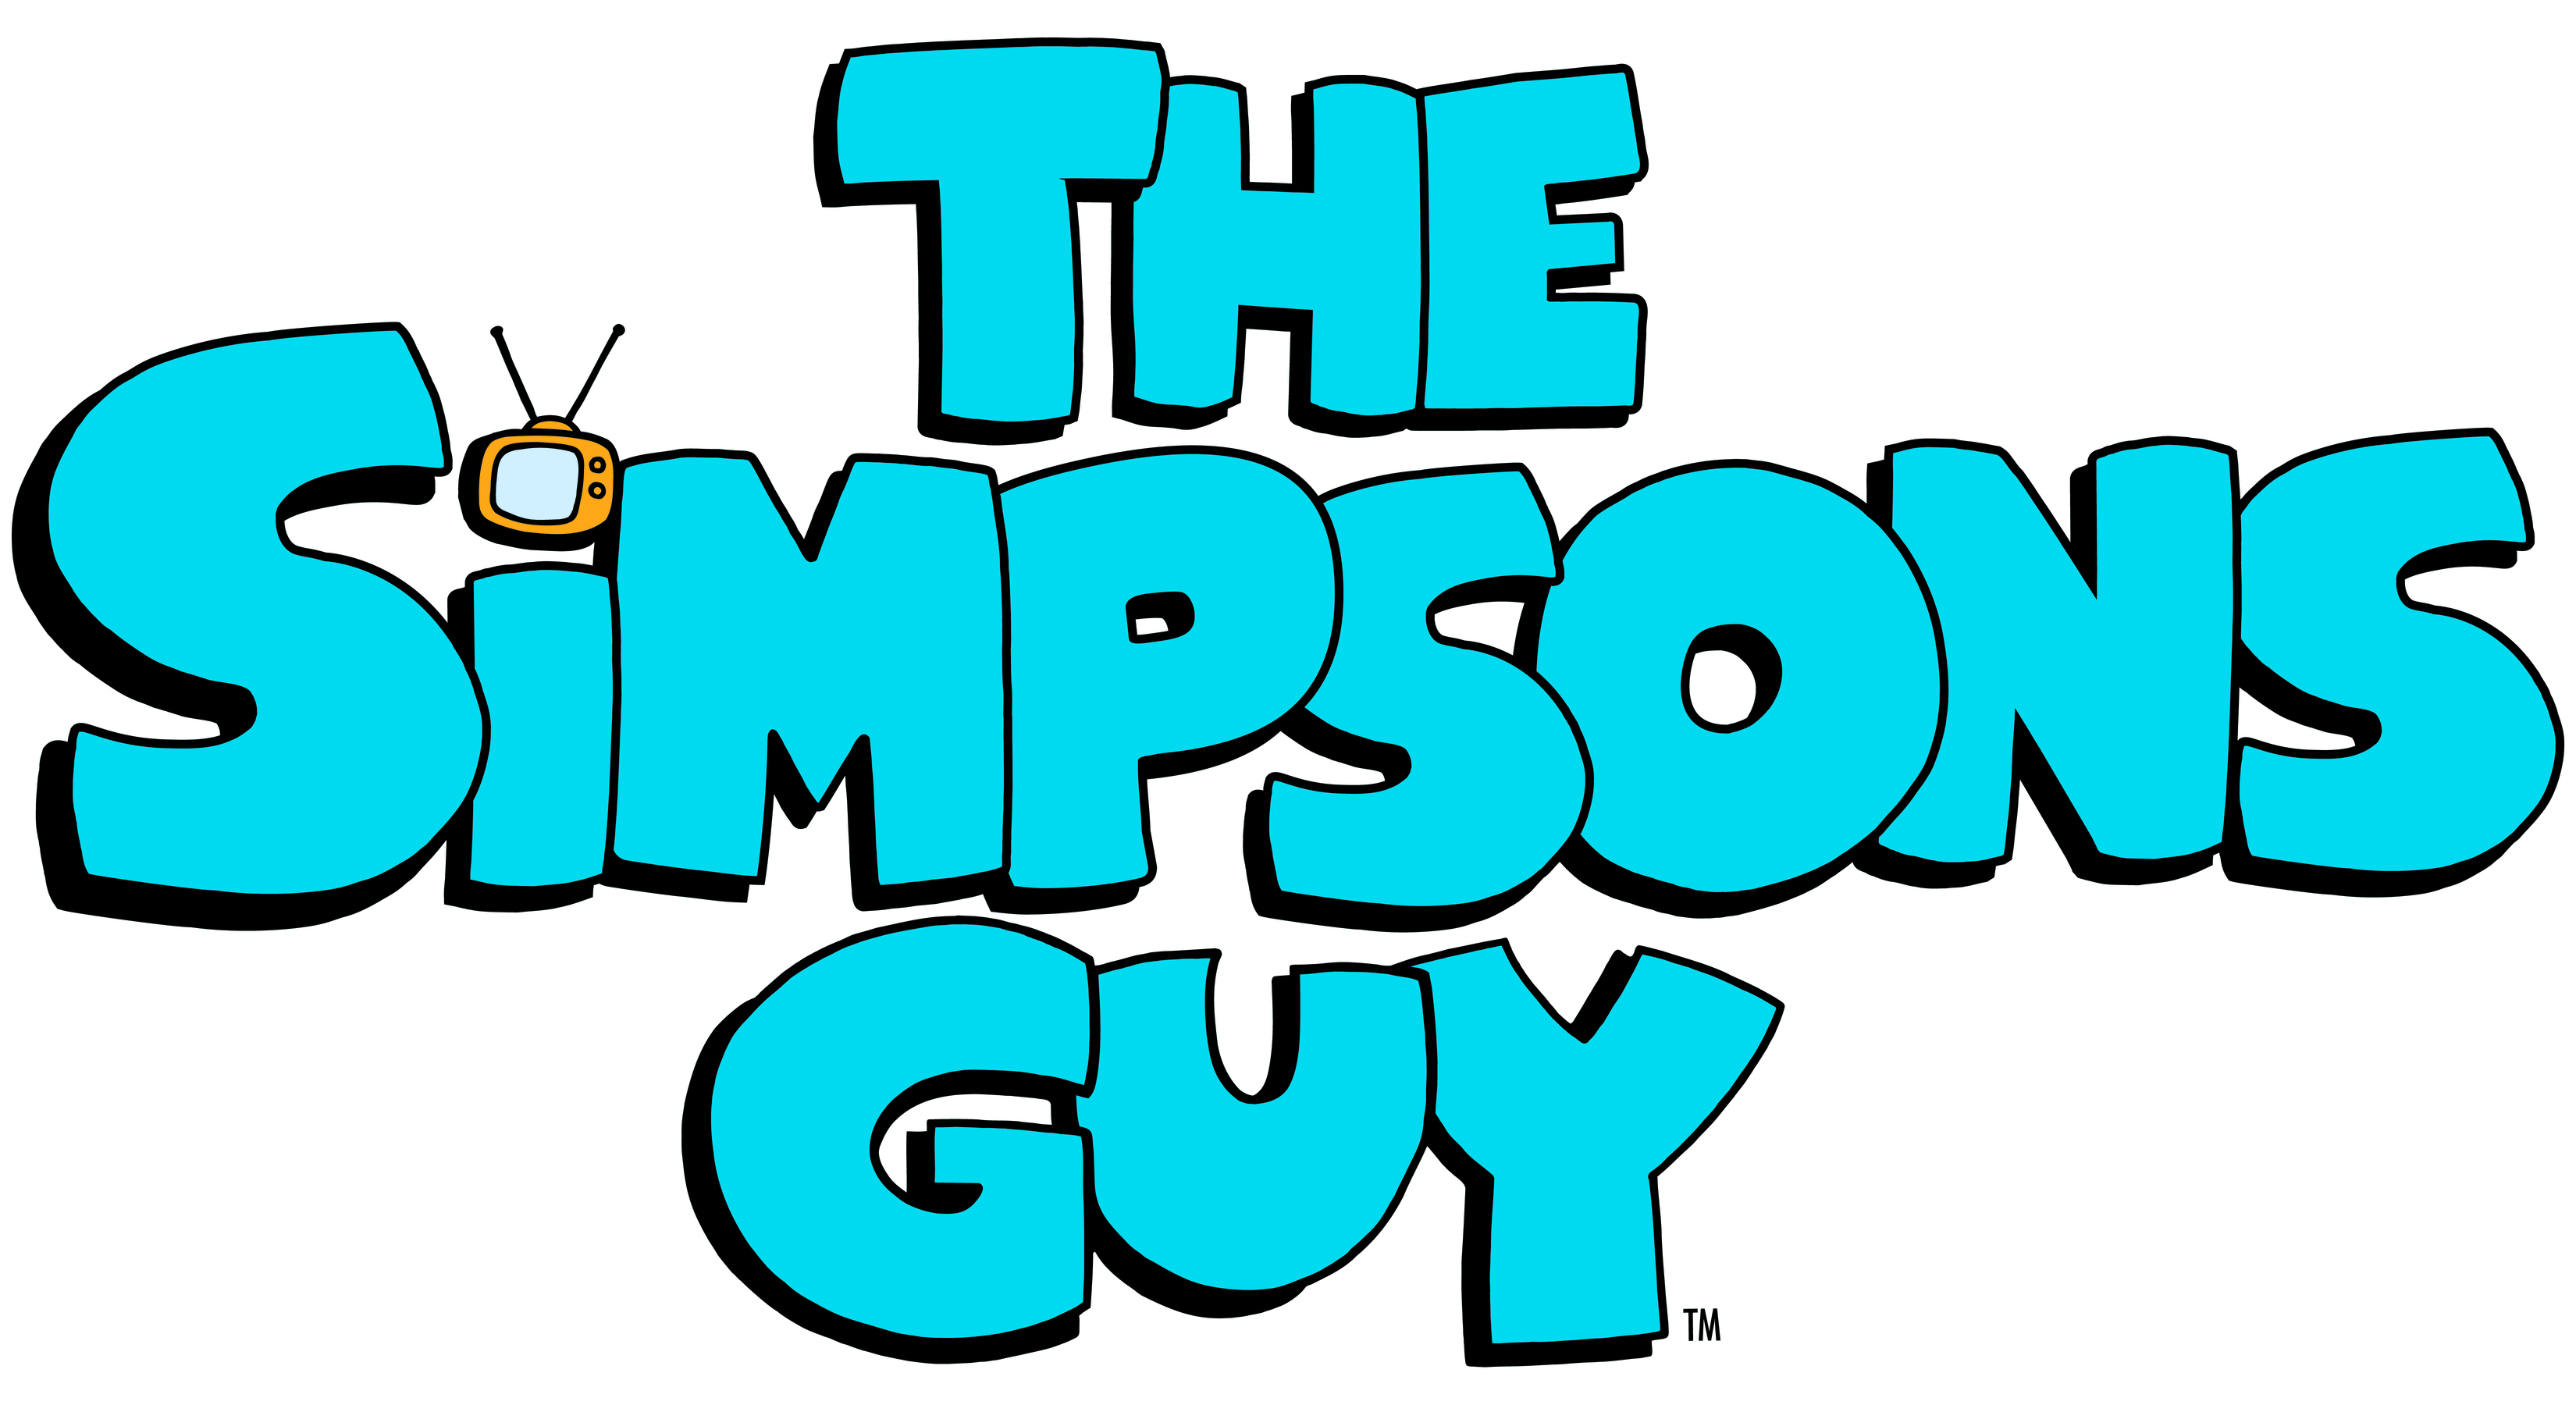 The Simpsons Guy promo 11.jpg